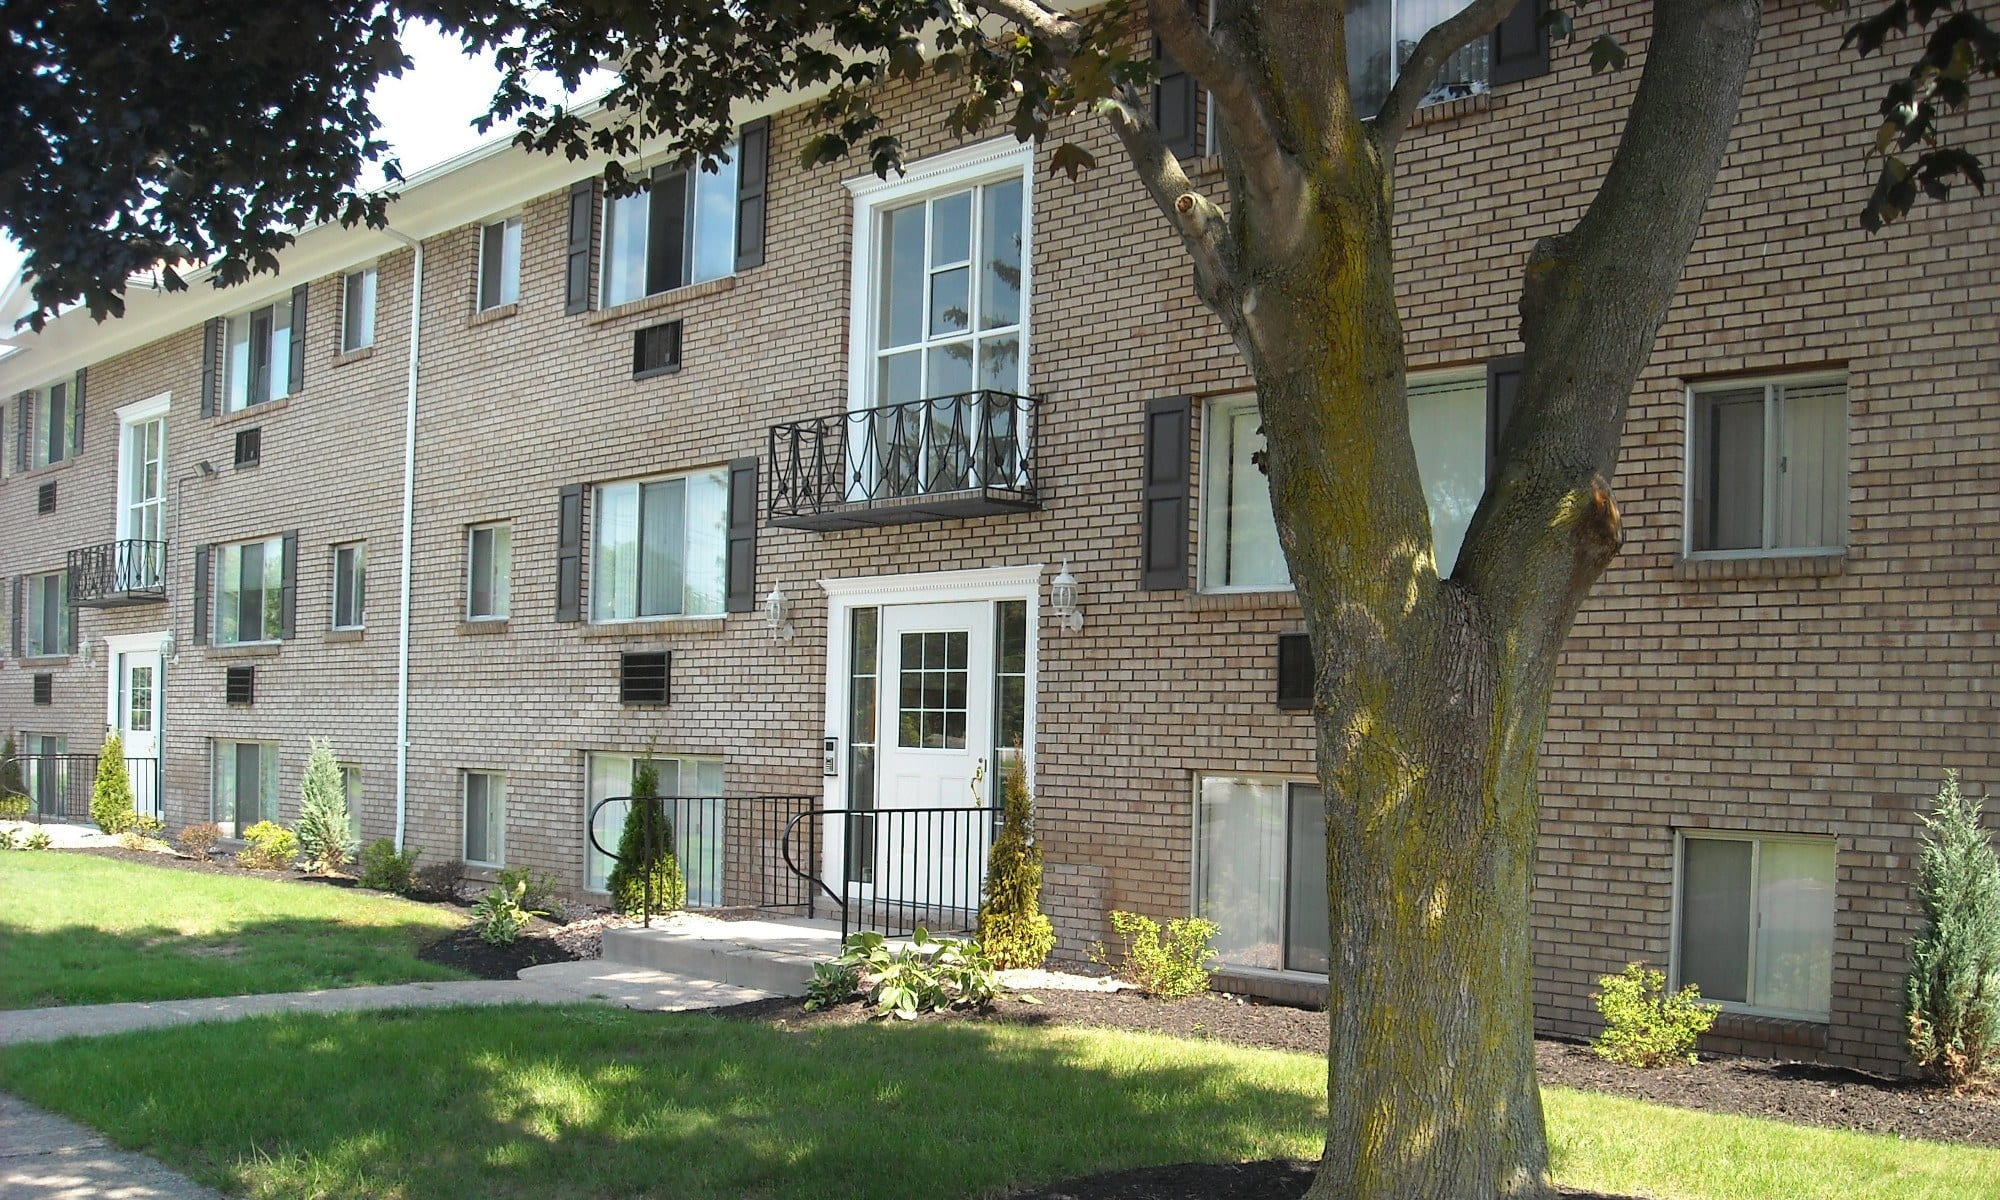 pittsford ny apartments for rent pittsford garden apartments